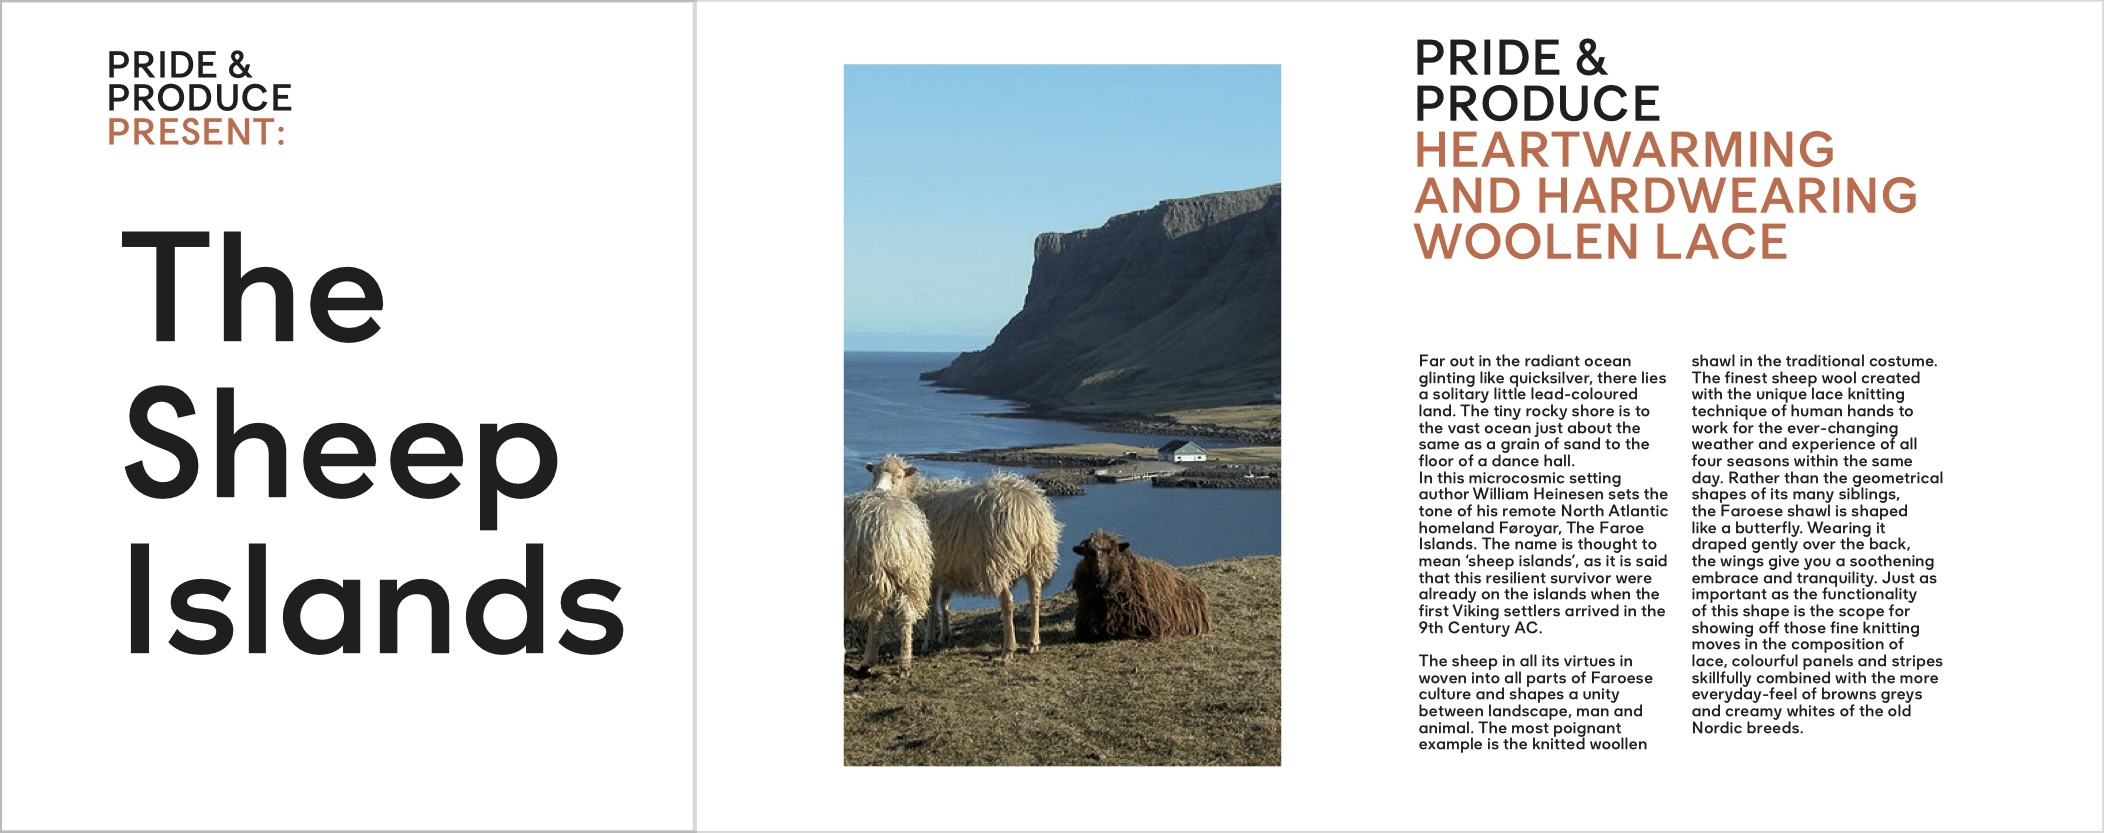 The Faroe Islands: Home of the Sheep